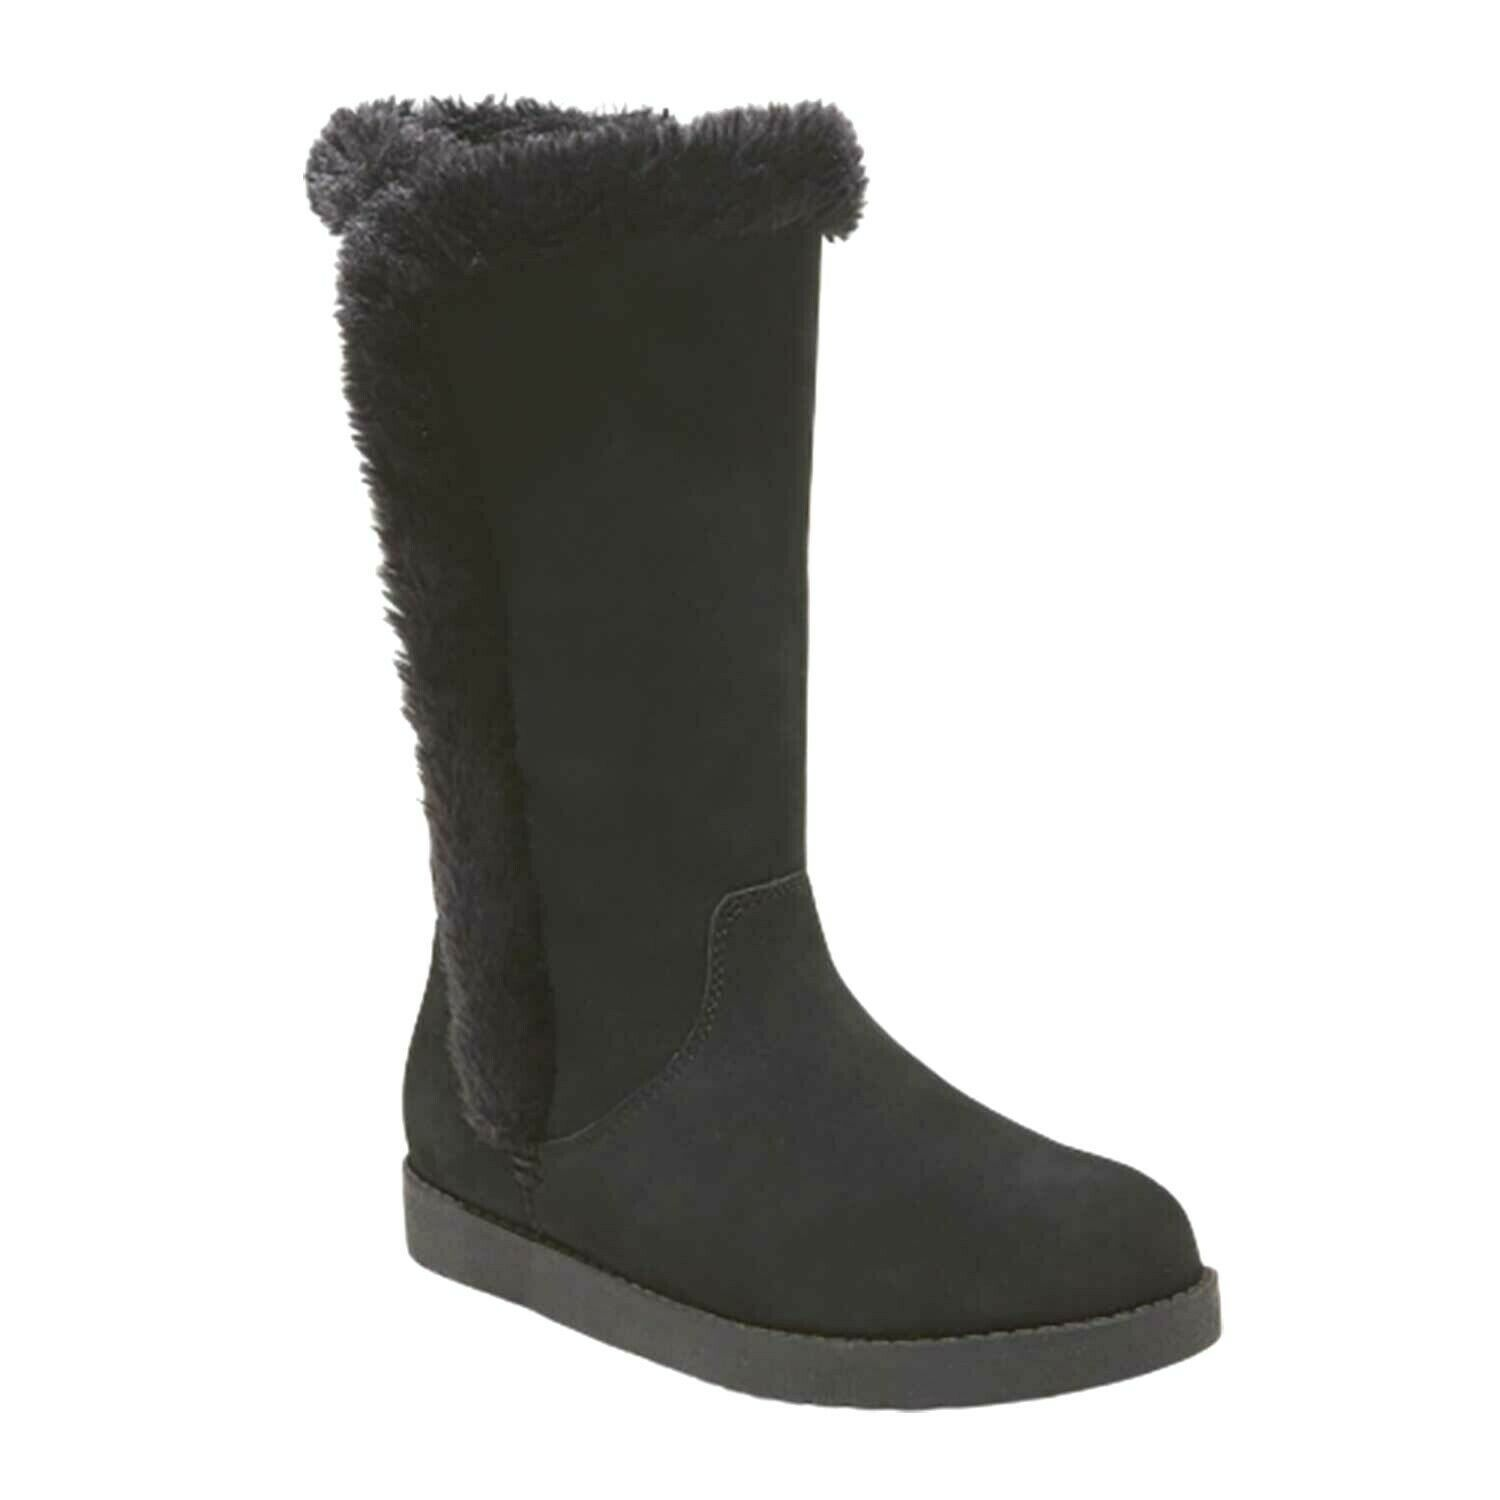 Universal Thread Women's Daniela Black Genuine Suede Faux Fur Tall Winter Boots